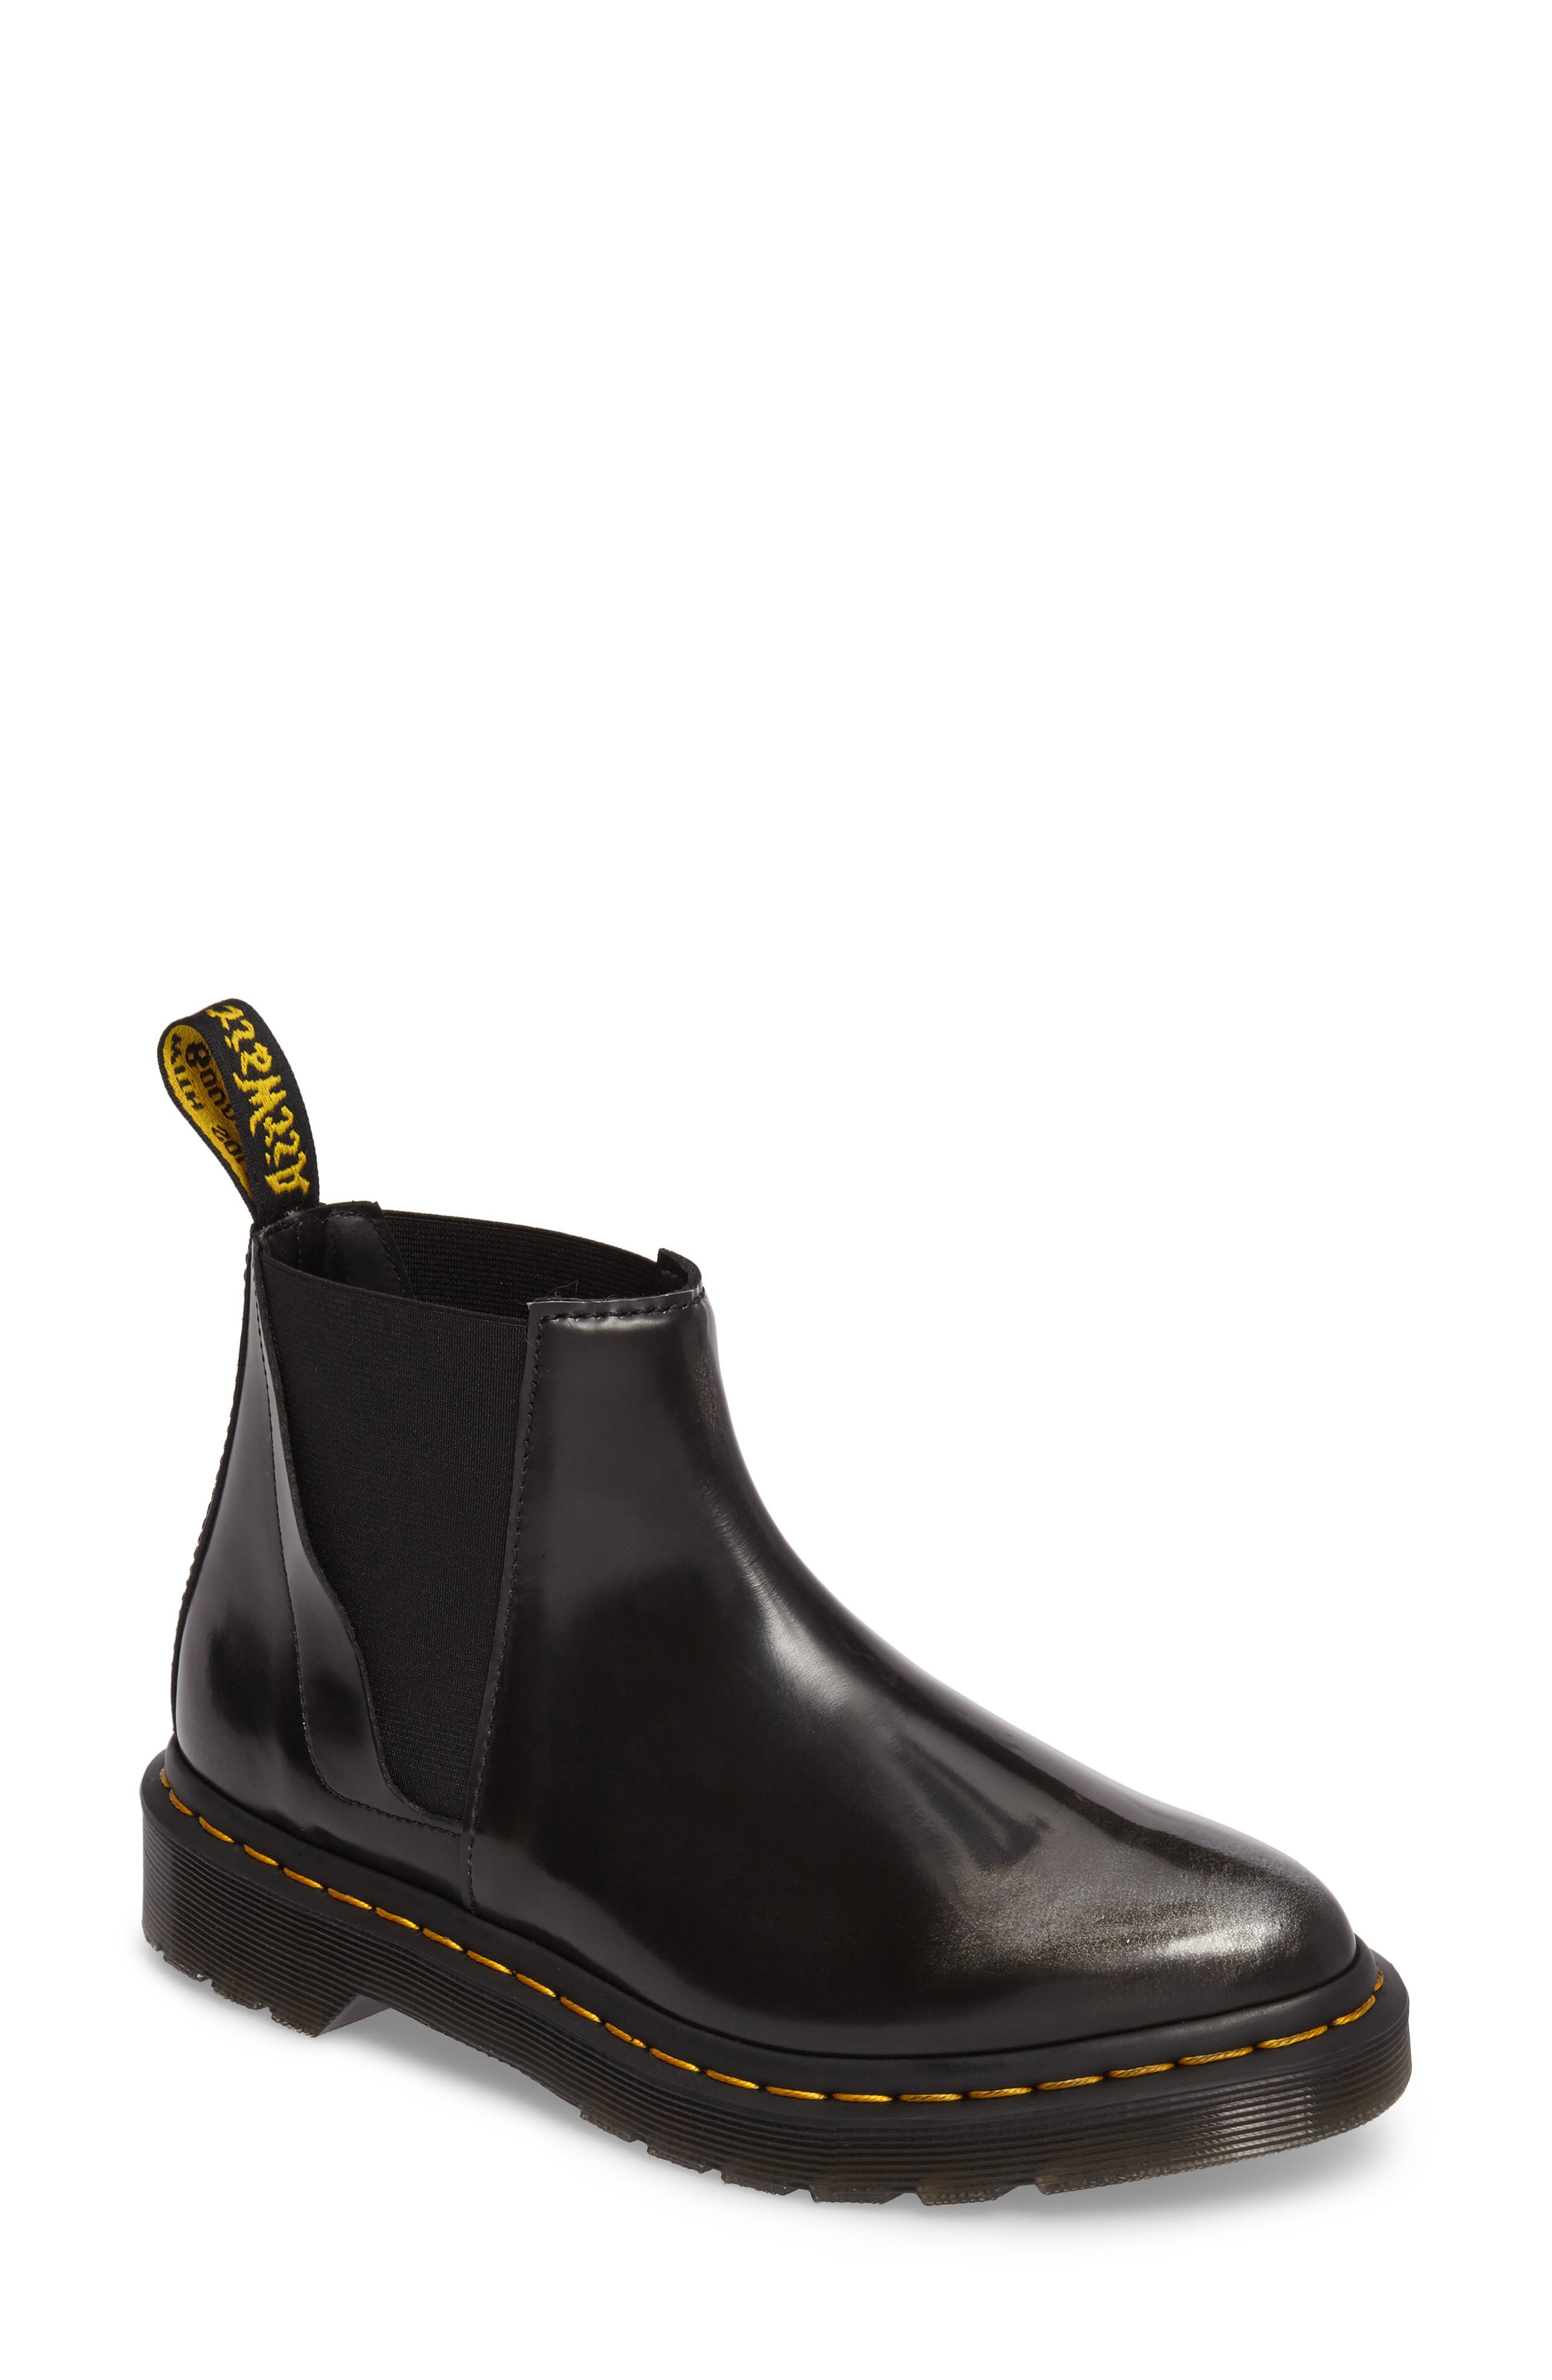 Main Image - Dr. Martens Bianca Smooth Bootie (Women)